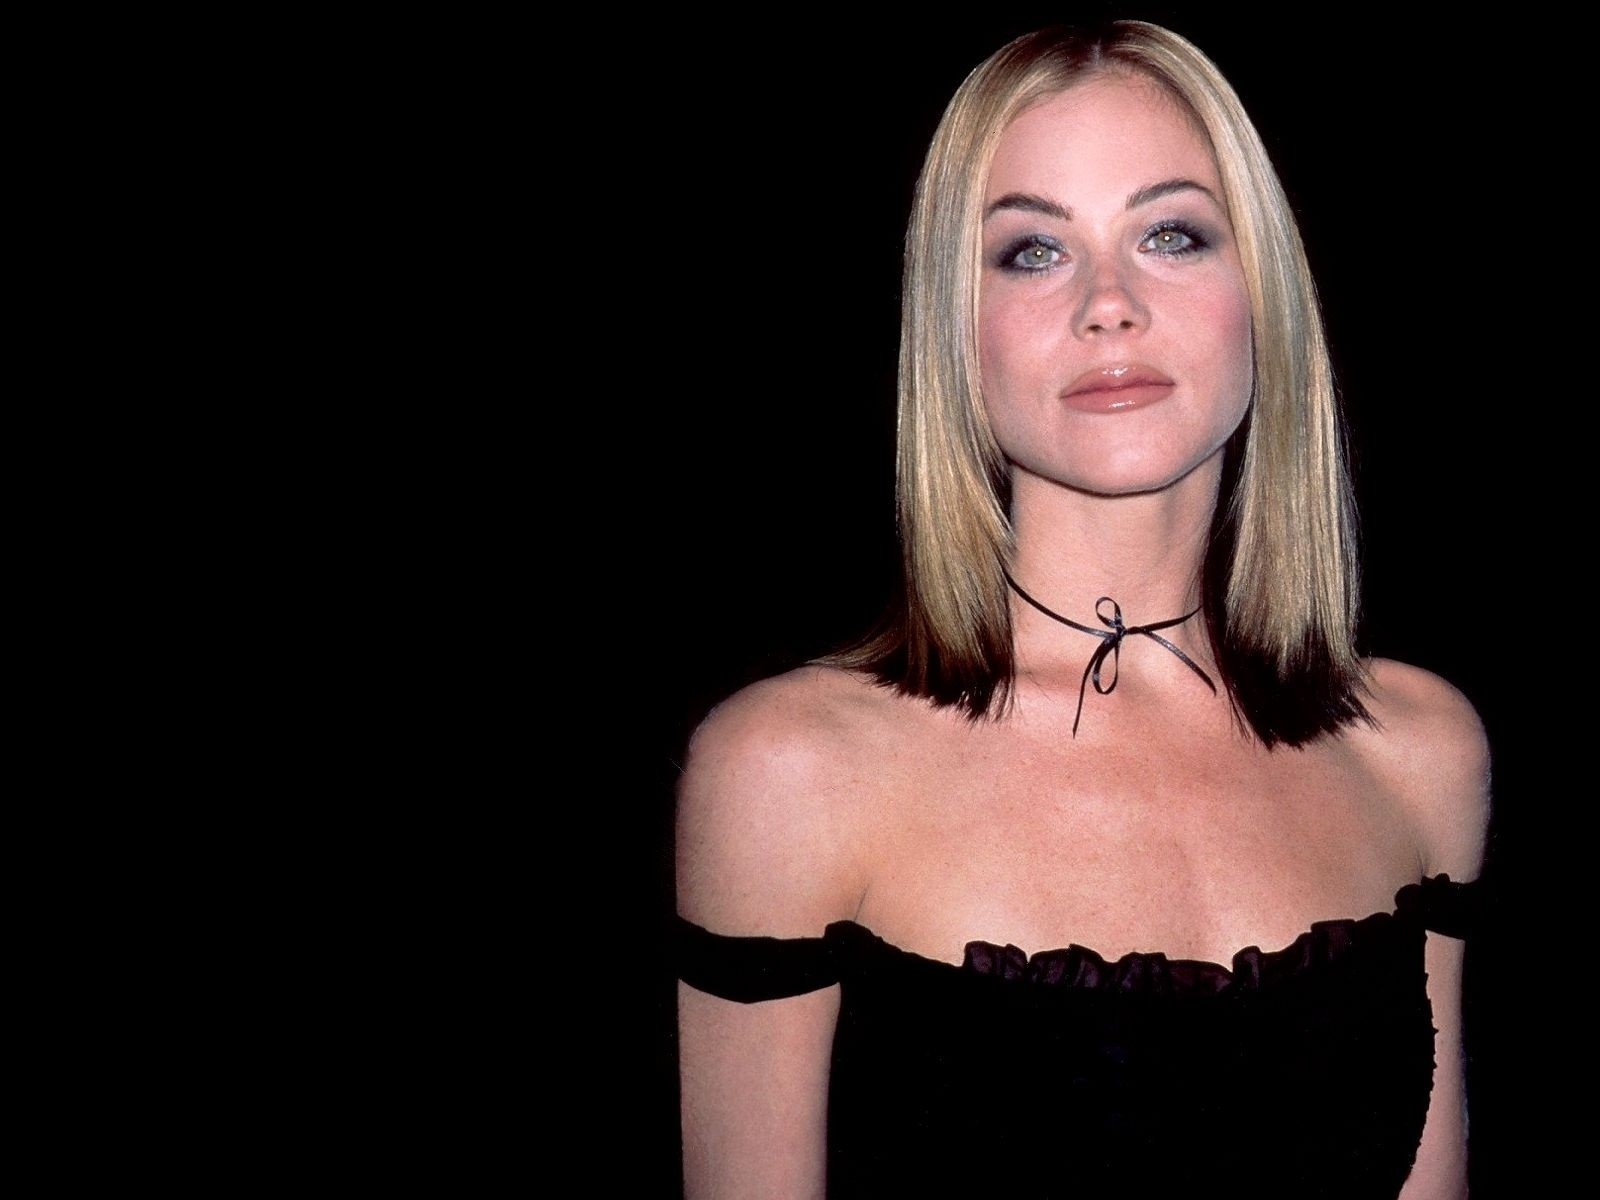 Wallpaper: una seducente Christina Applegate